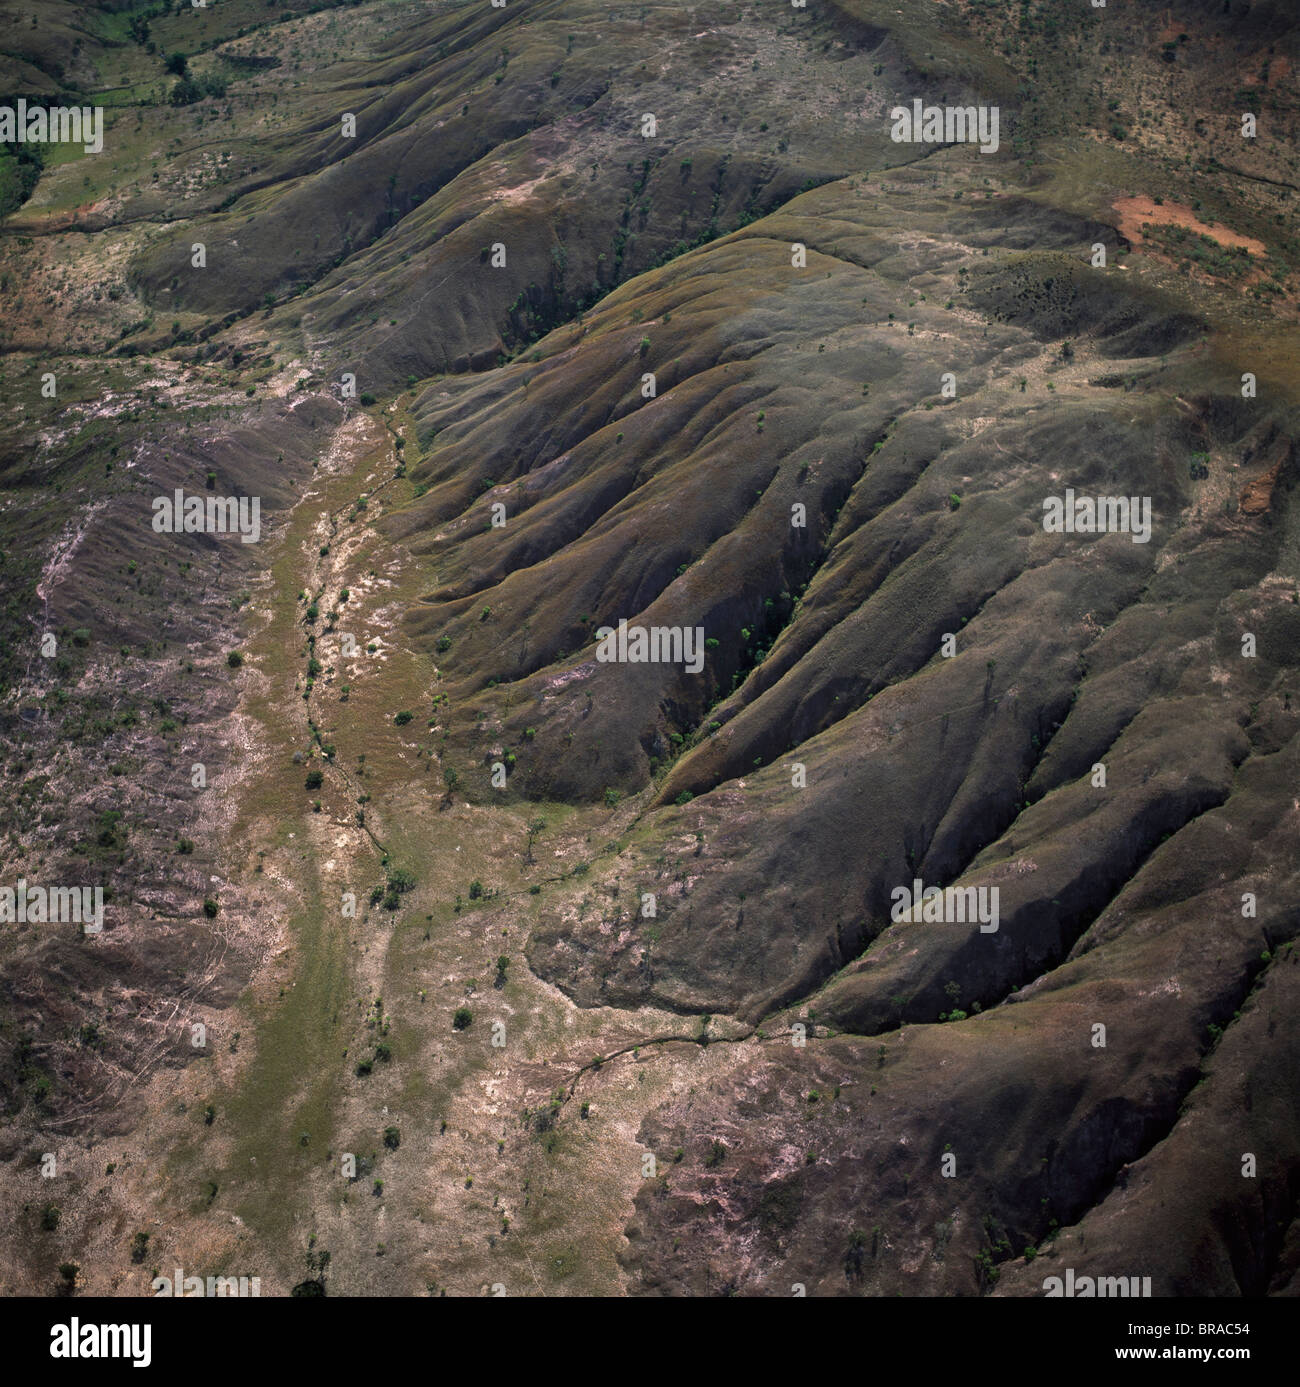 Aerial view of highland savannah and erosion, near Ireng River, Rupununi District, Guyana, South America - Stock Image